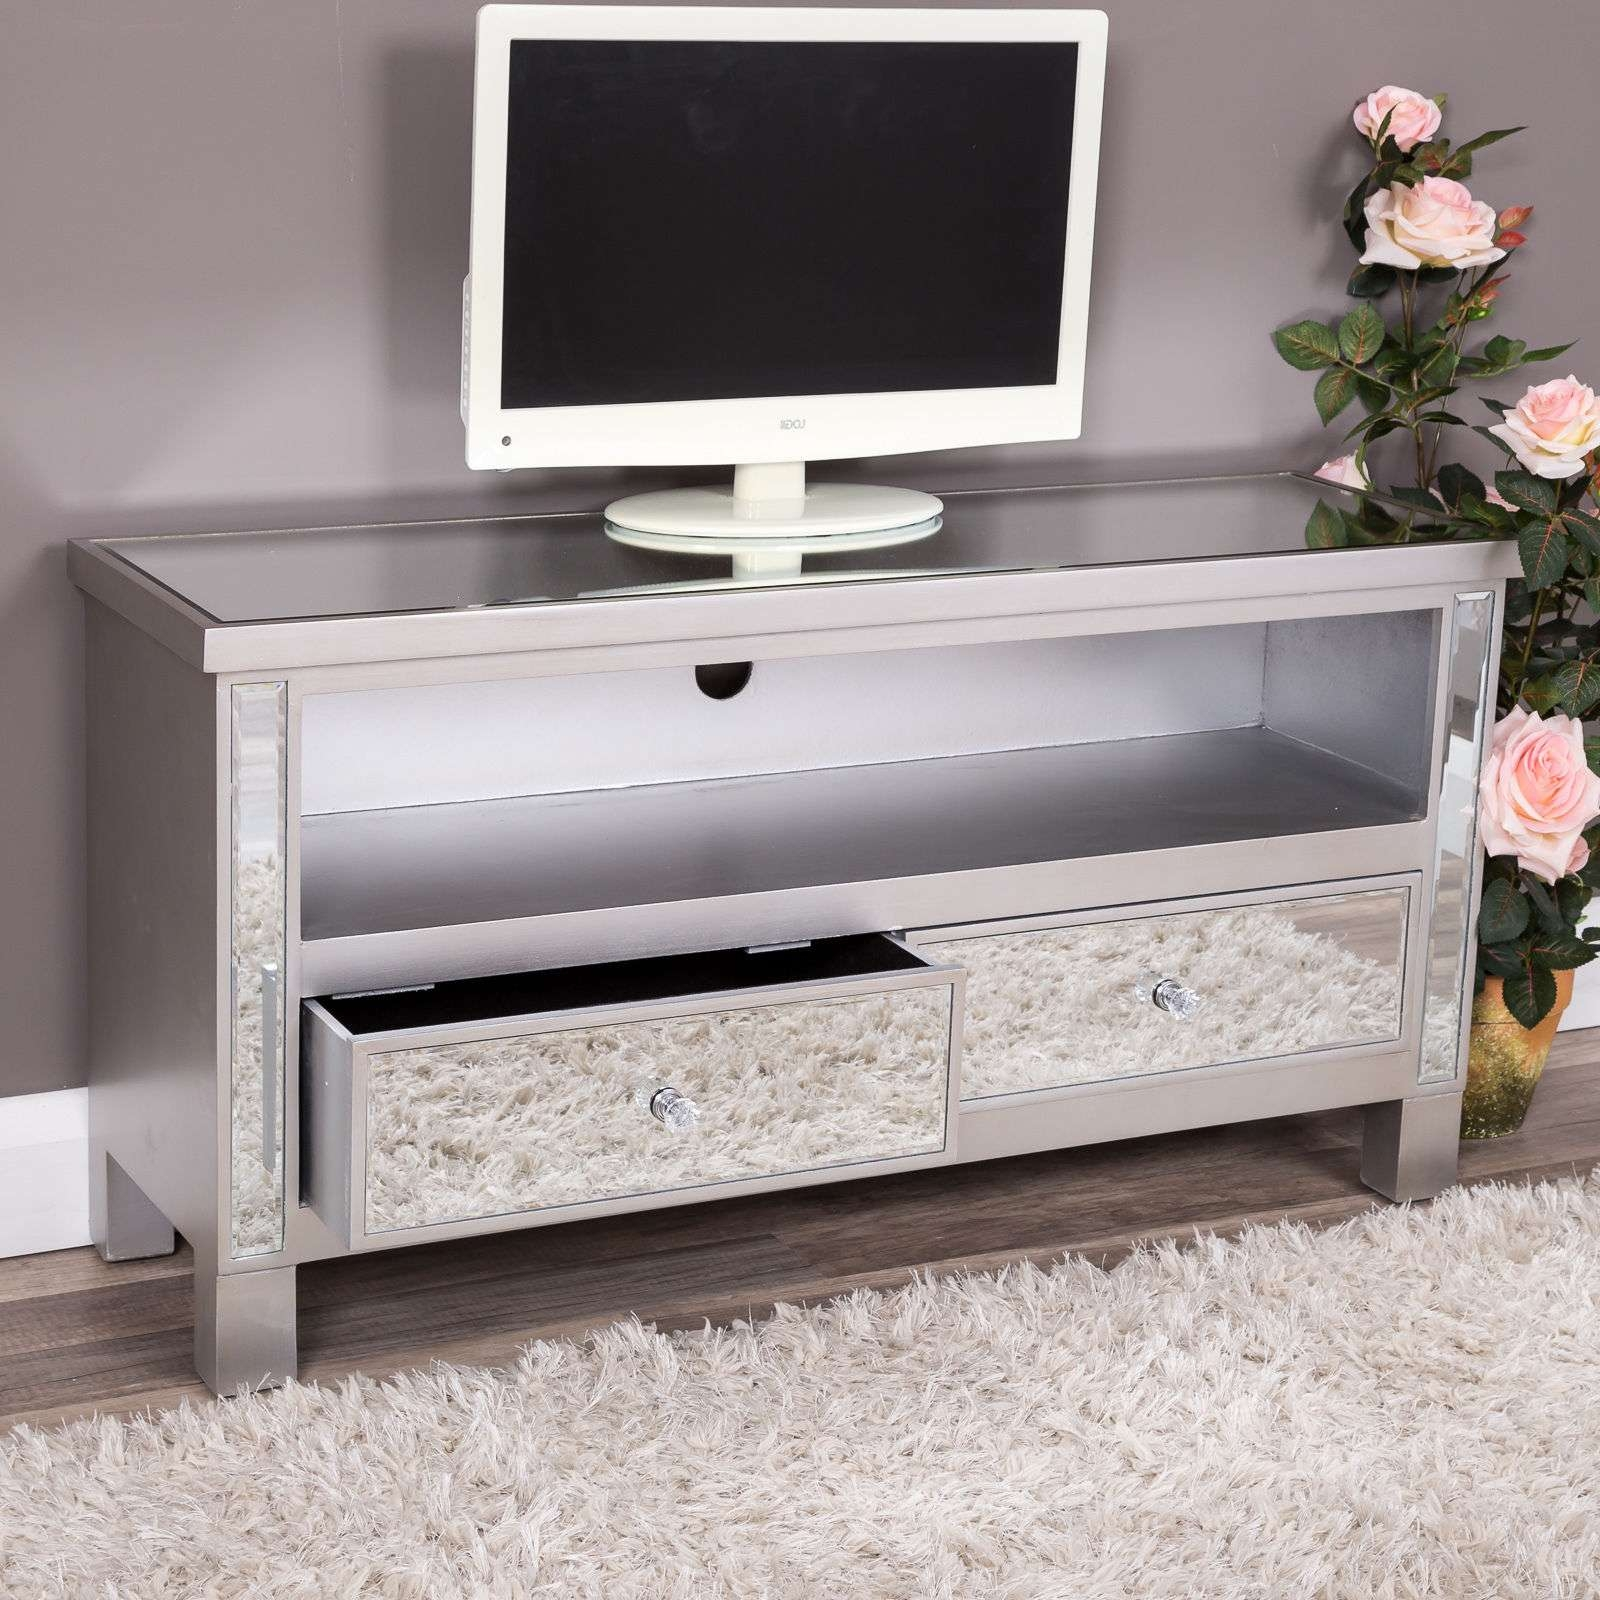 Silver Mirrored Glass 2 Drawer Tv Entertainment Cabinet Stand Unit Intended For Mirror Tv Cabinets (View 5 of 20)